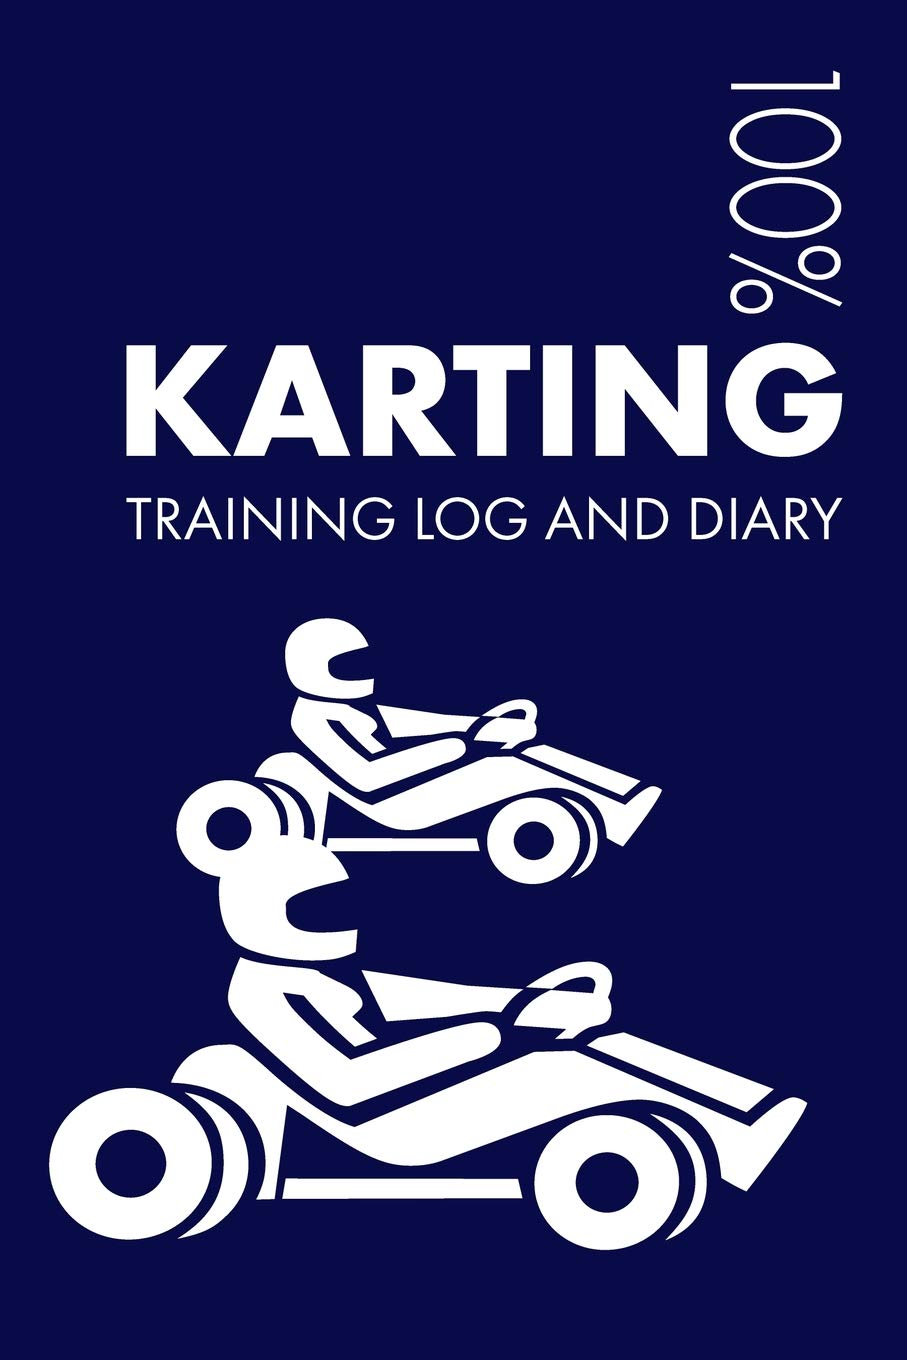 Karting Training Log and Diary: Training Journal For Karting   Notebook